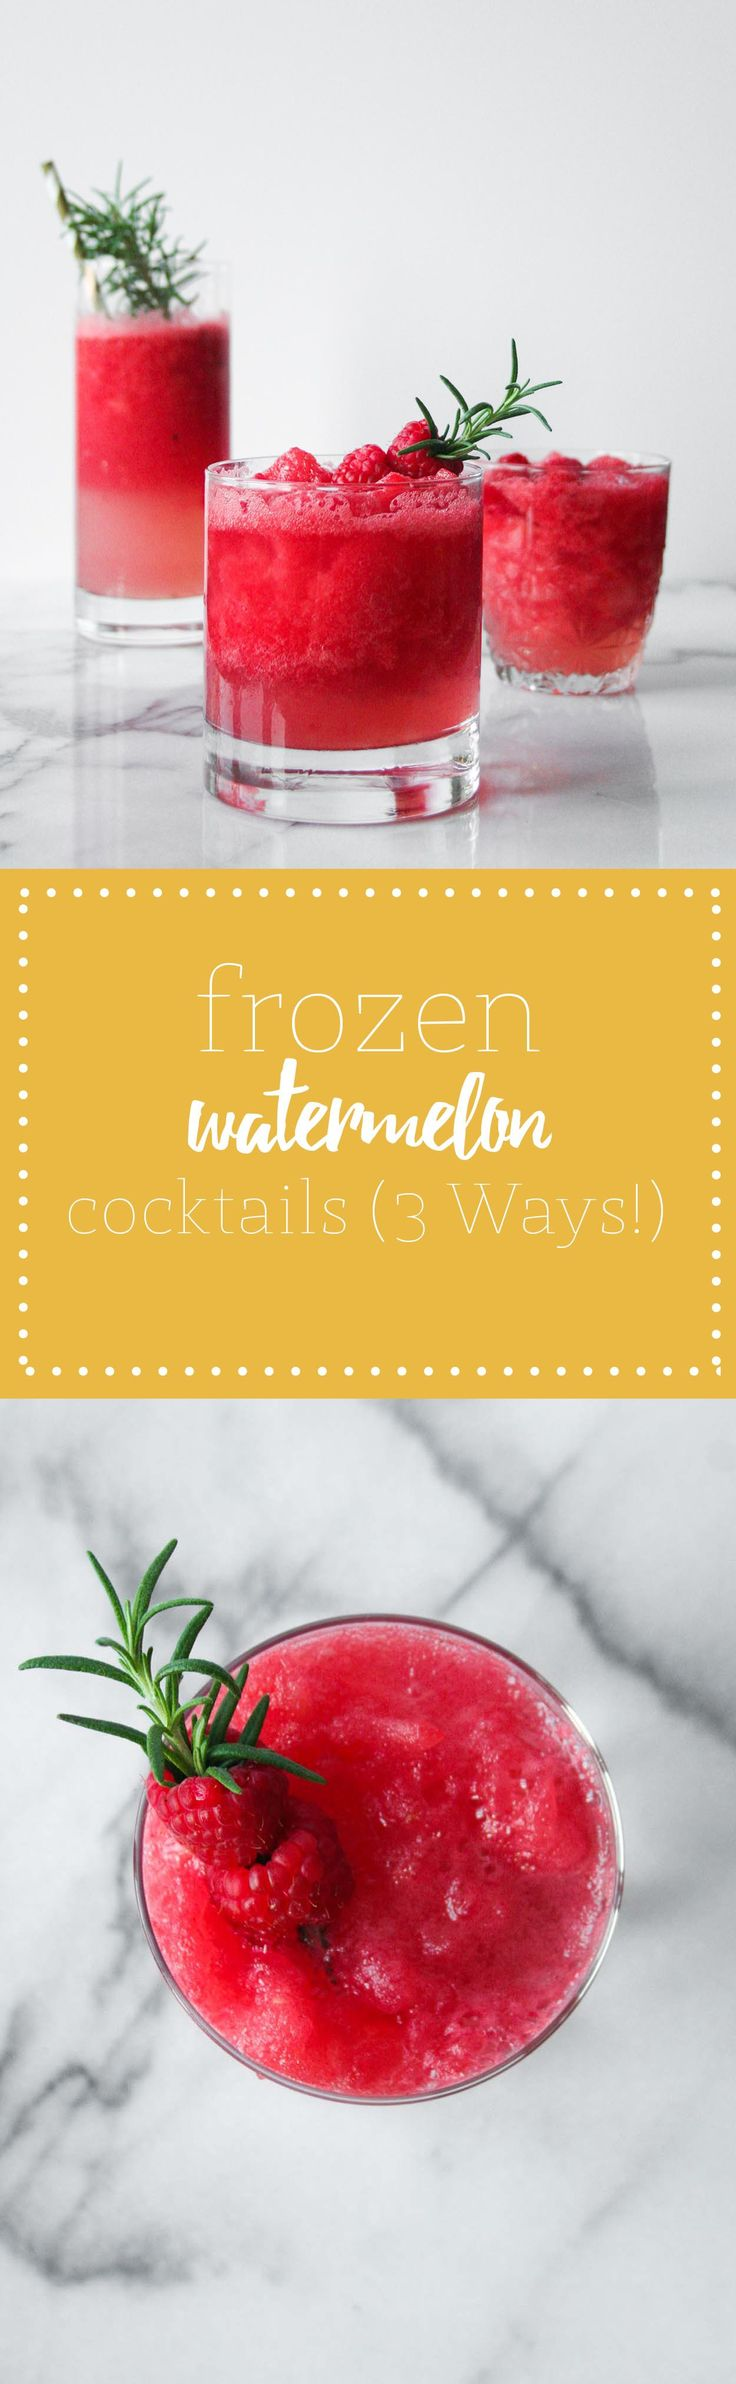 Bright and refreshing frozen watermelon cocktails (3 ways!) - Perfect for summer sippin'! | Hungry by Nature